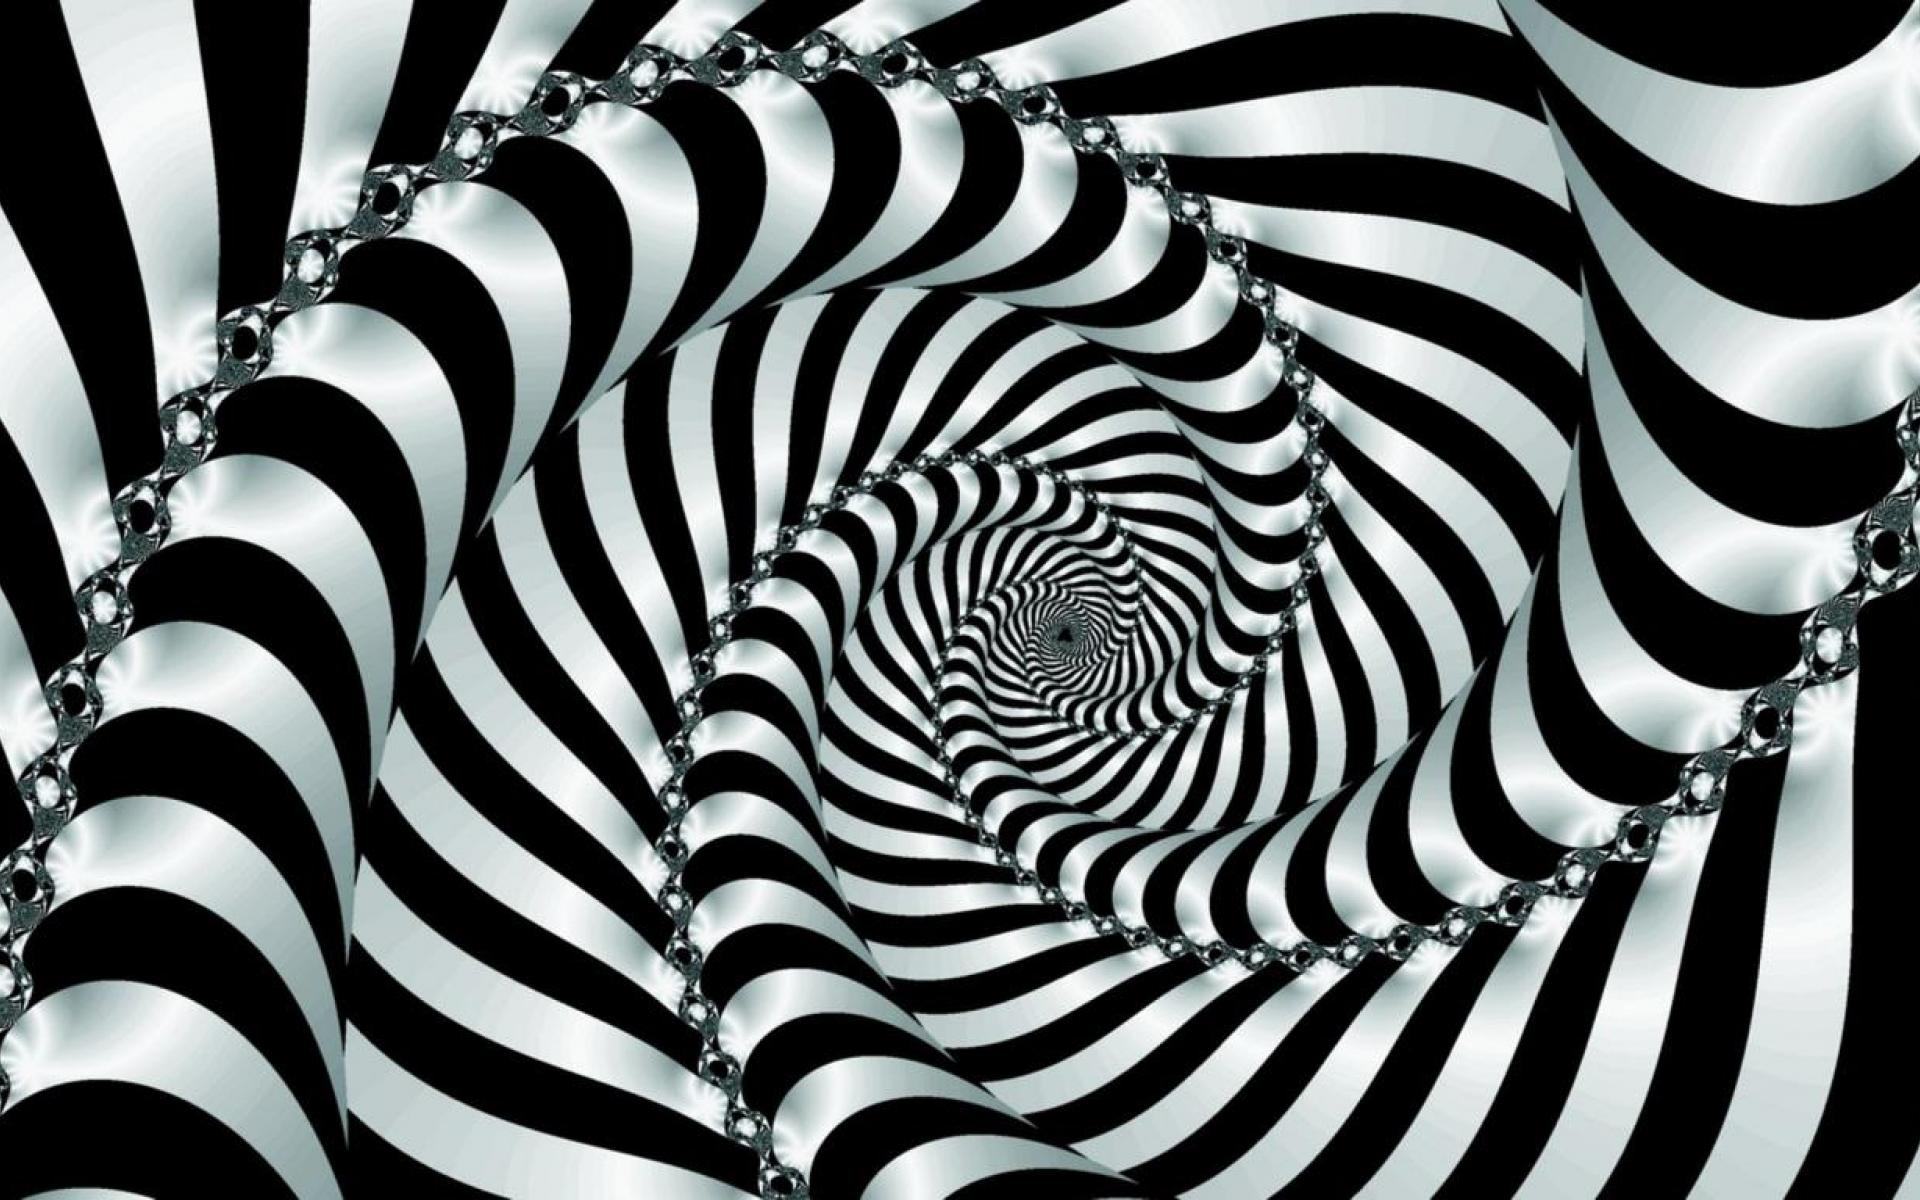 Moving Optical Illusions HD Wallpaper | HD Latest Wallpapers